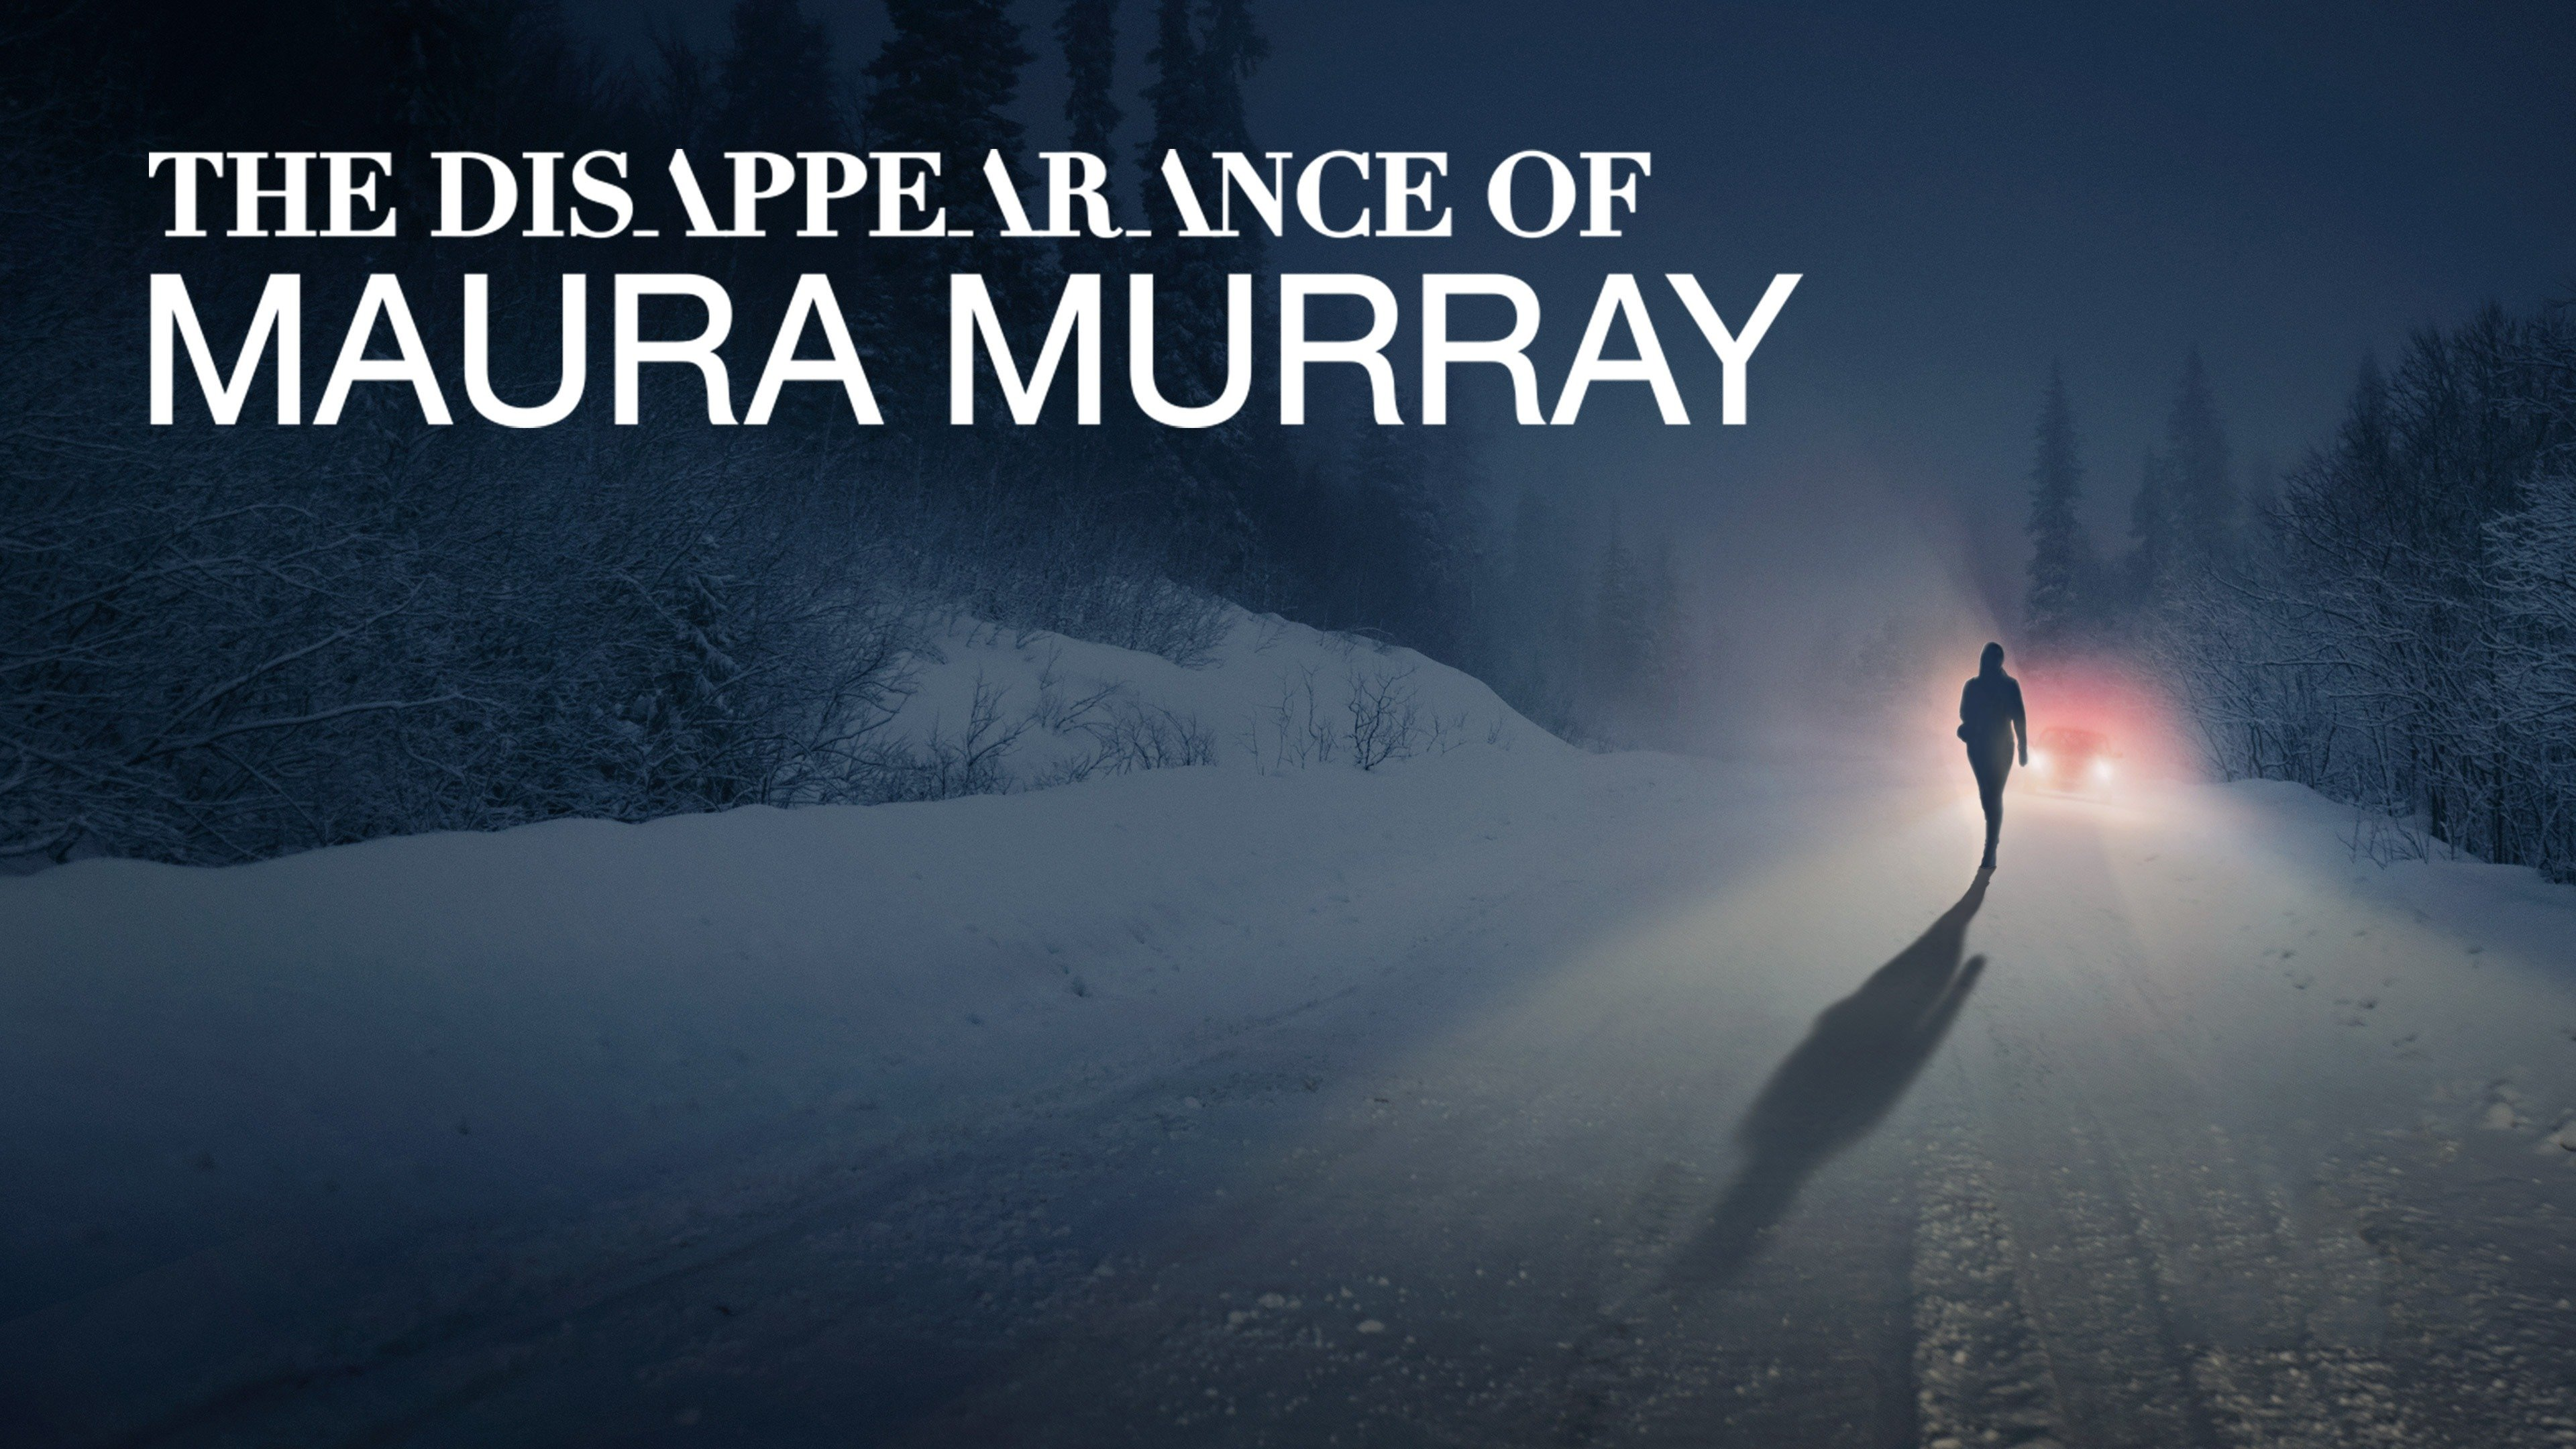 The Disappearance of Maura Murray